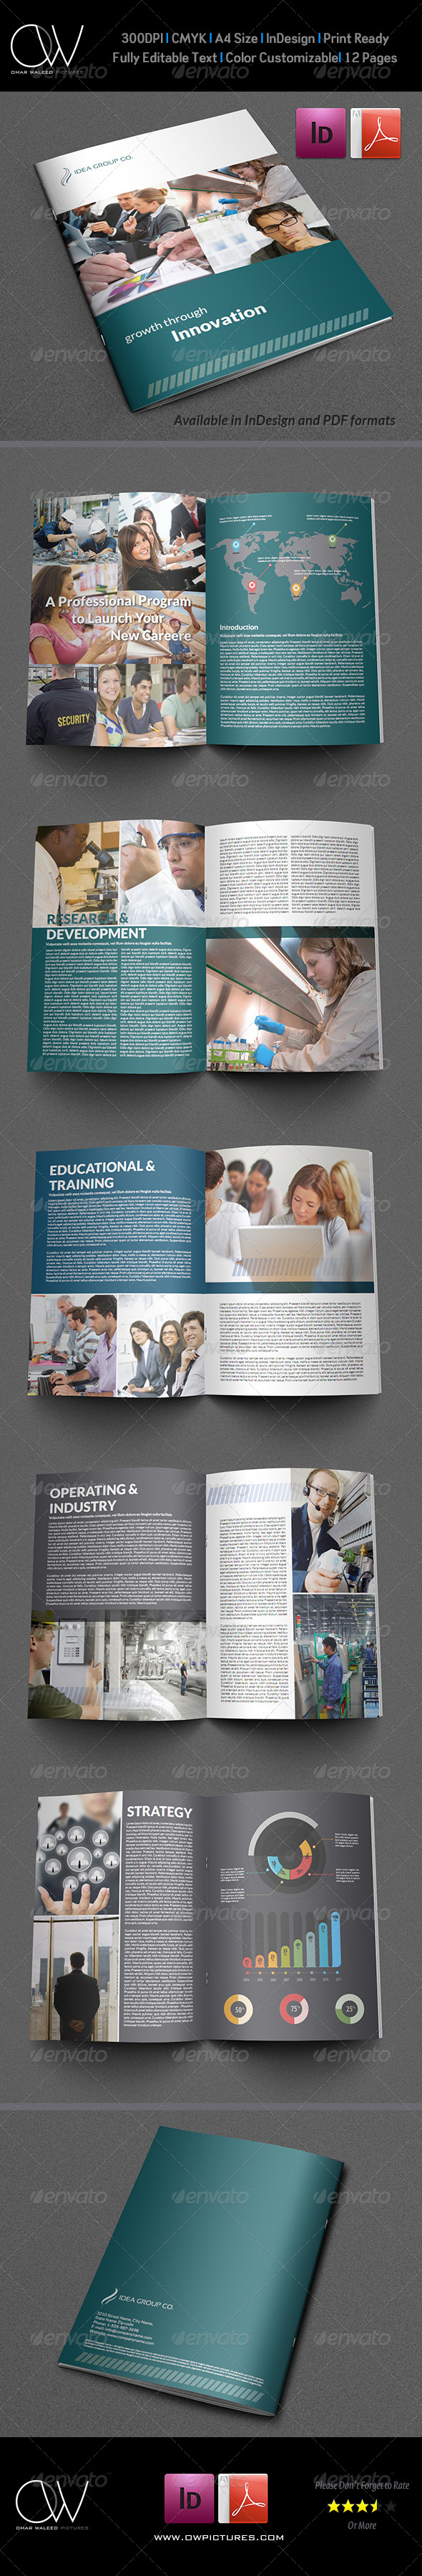 Company Brochure Template Vol.13 - 12 Pages - Corporate Brochures